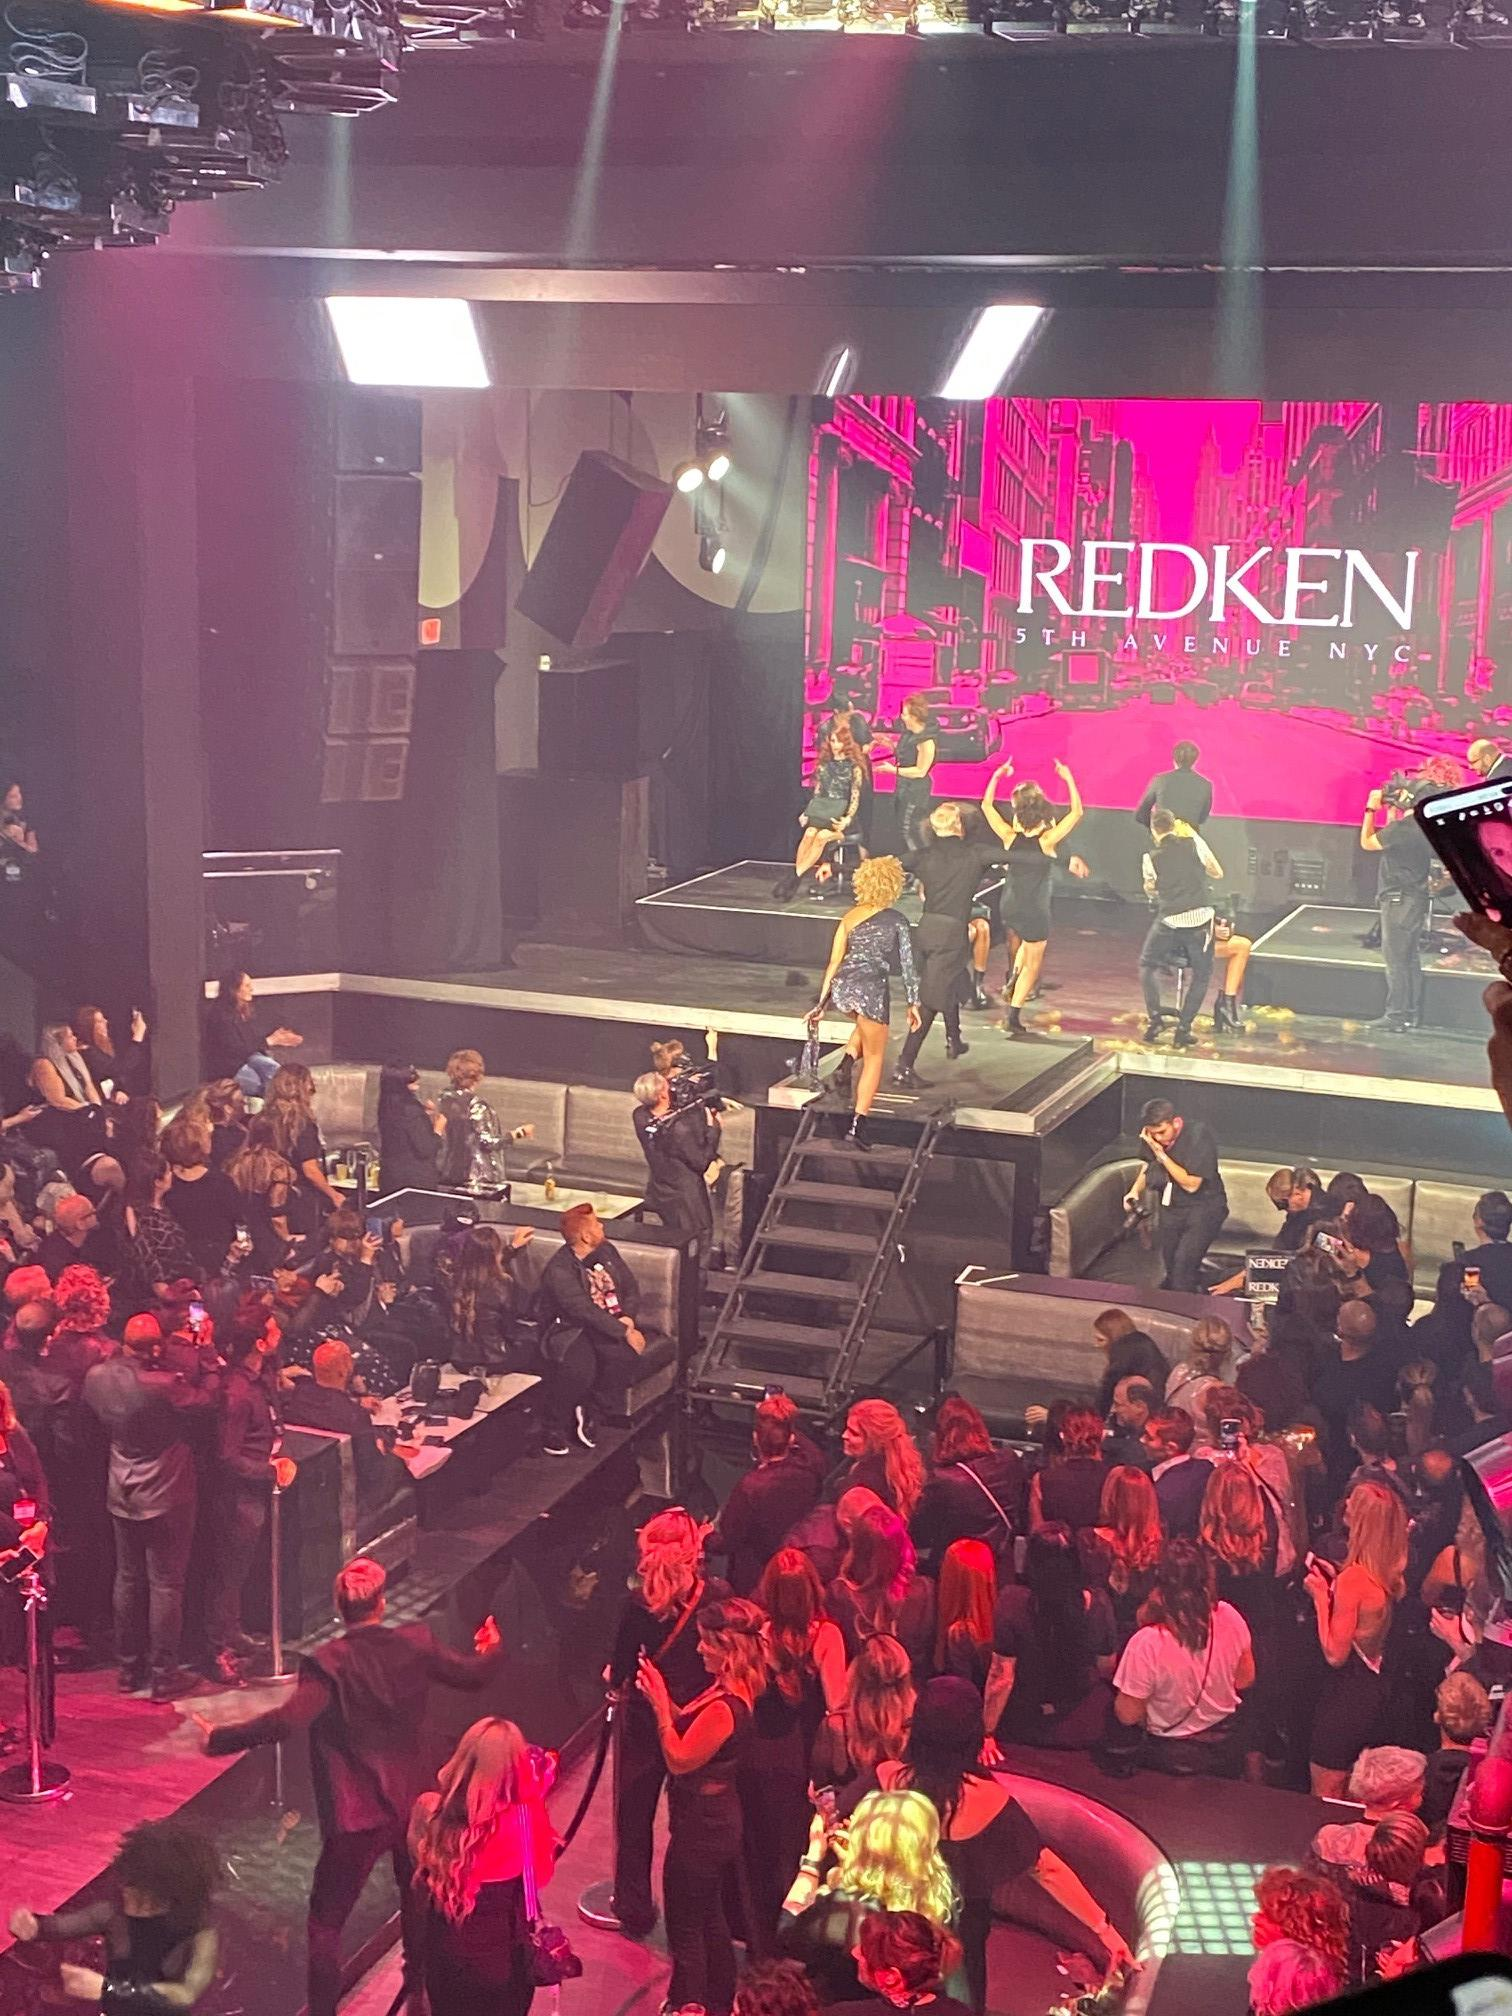 Redken Artist Connection Worldwide Kicks Off 2020 With New Launches, Education and Celebration